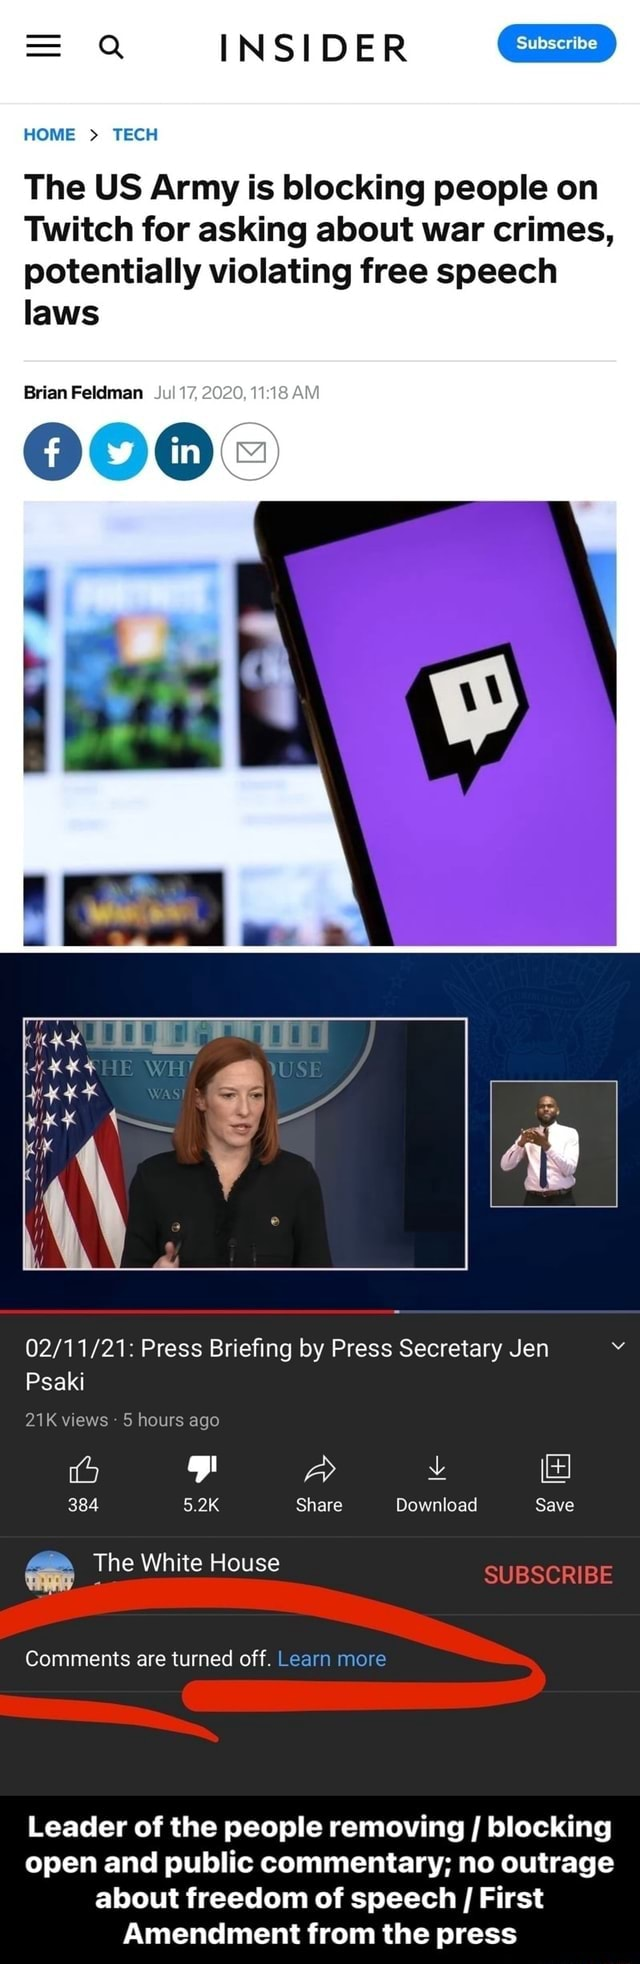 INSIDER HOME  TECH laws Brian Feldman Jul 2620, The US Army is blocking people on Twitch for asking about war crimes, potentially violating free speech Press Briefing by Press Secretary Jen Psaki views 5 hours ago 384 5.2K Share Download Save SUBSCRIBE The White House Comments are turned off. Learn more Leader of the people removing blocking open and public commentary no outrage about freedom of speech I First Amendment from the press meme